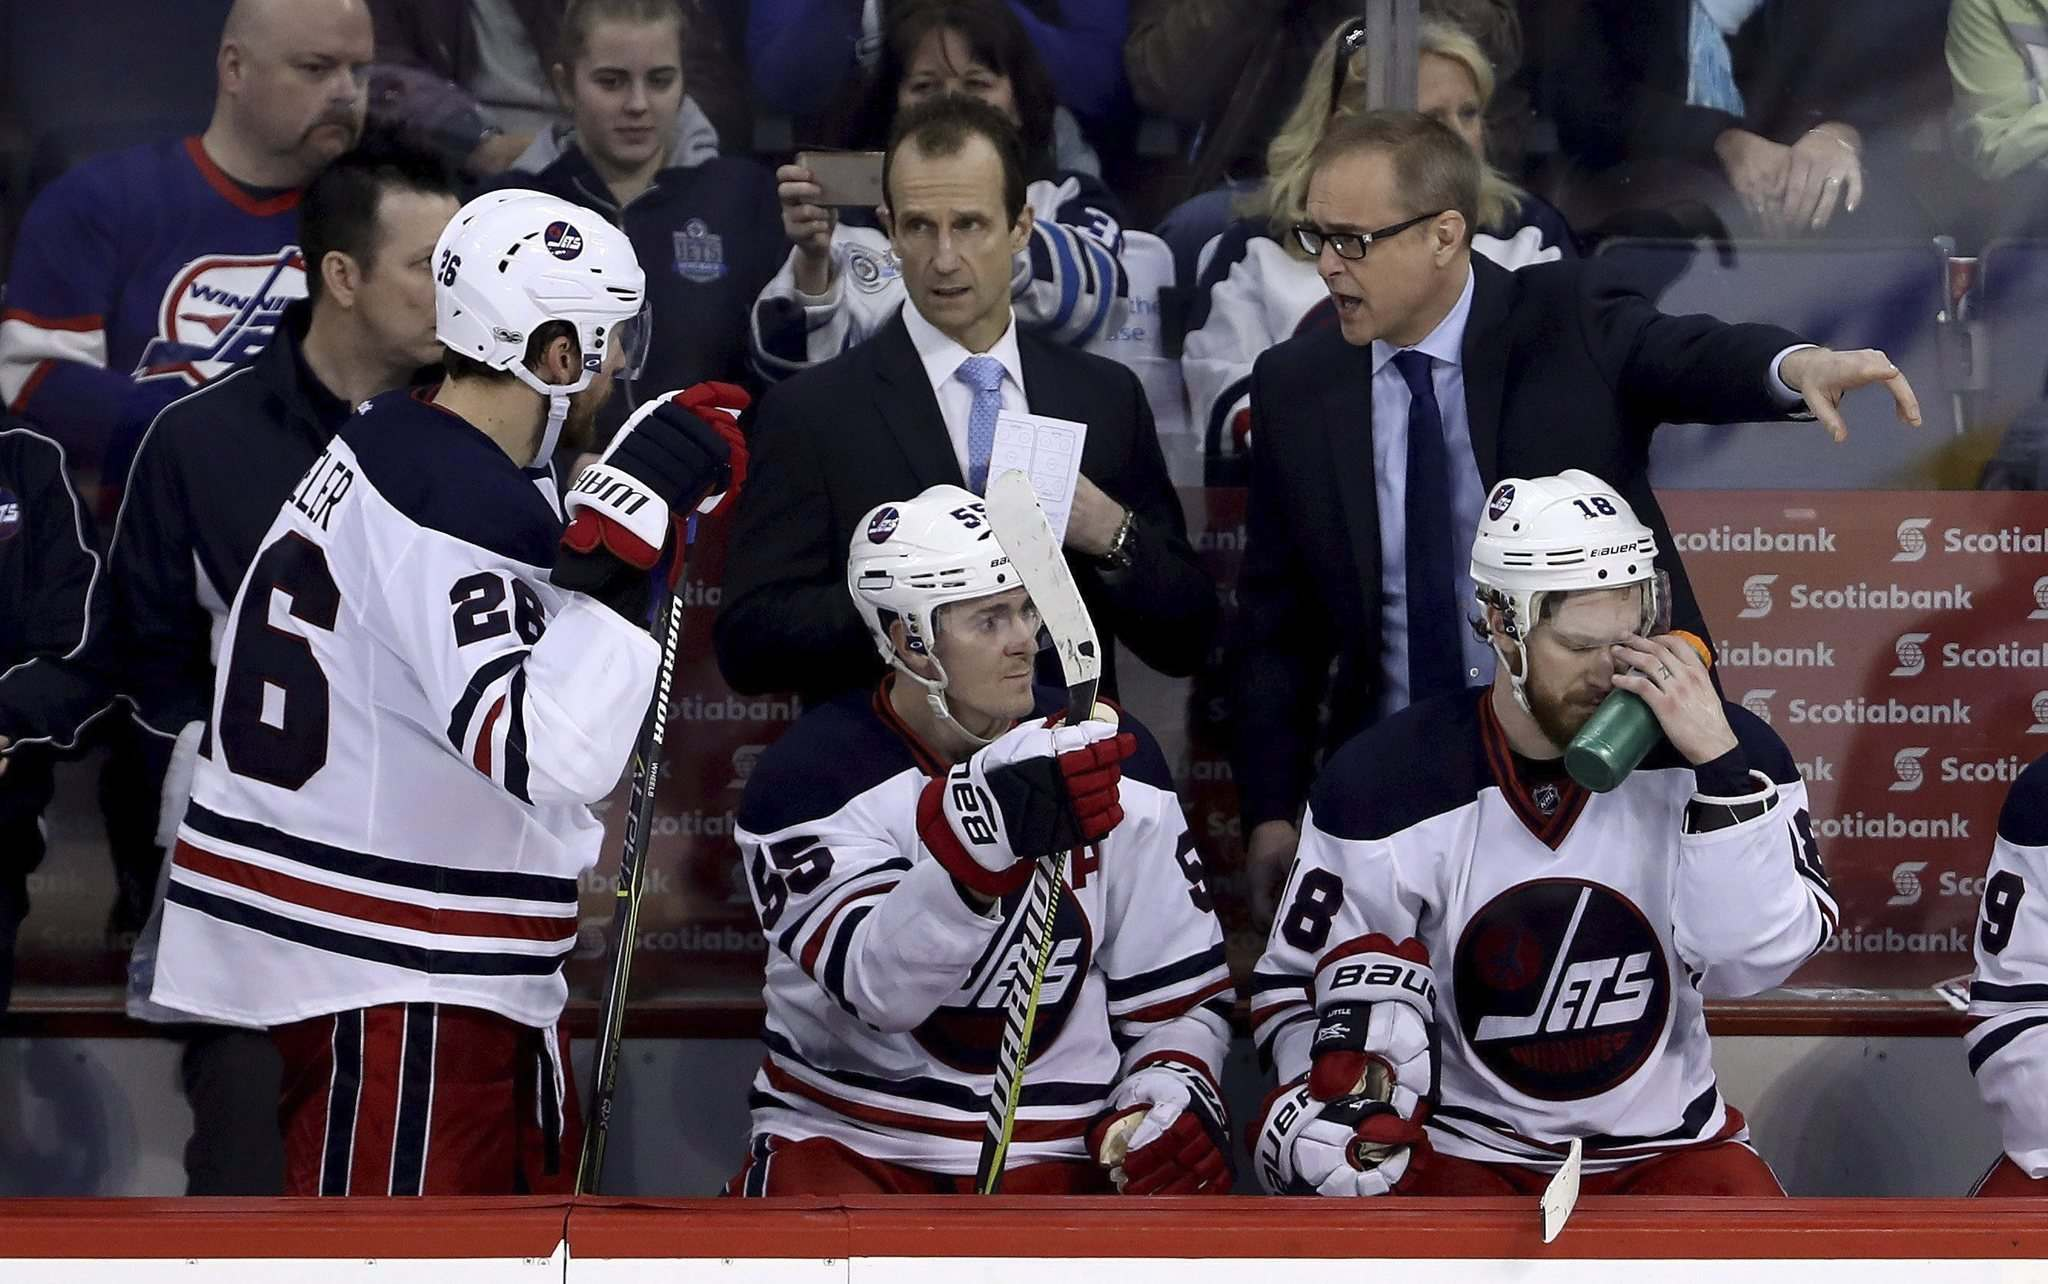 Winnipeg Jets' head coach Paul Maurice gives instructions to Blake Wheeler (26) while playing against the Minnesota Wild during third period NHL hockey action in Winnipeg, Sunday, March 19, 2017.